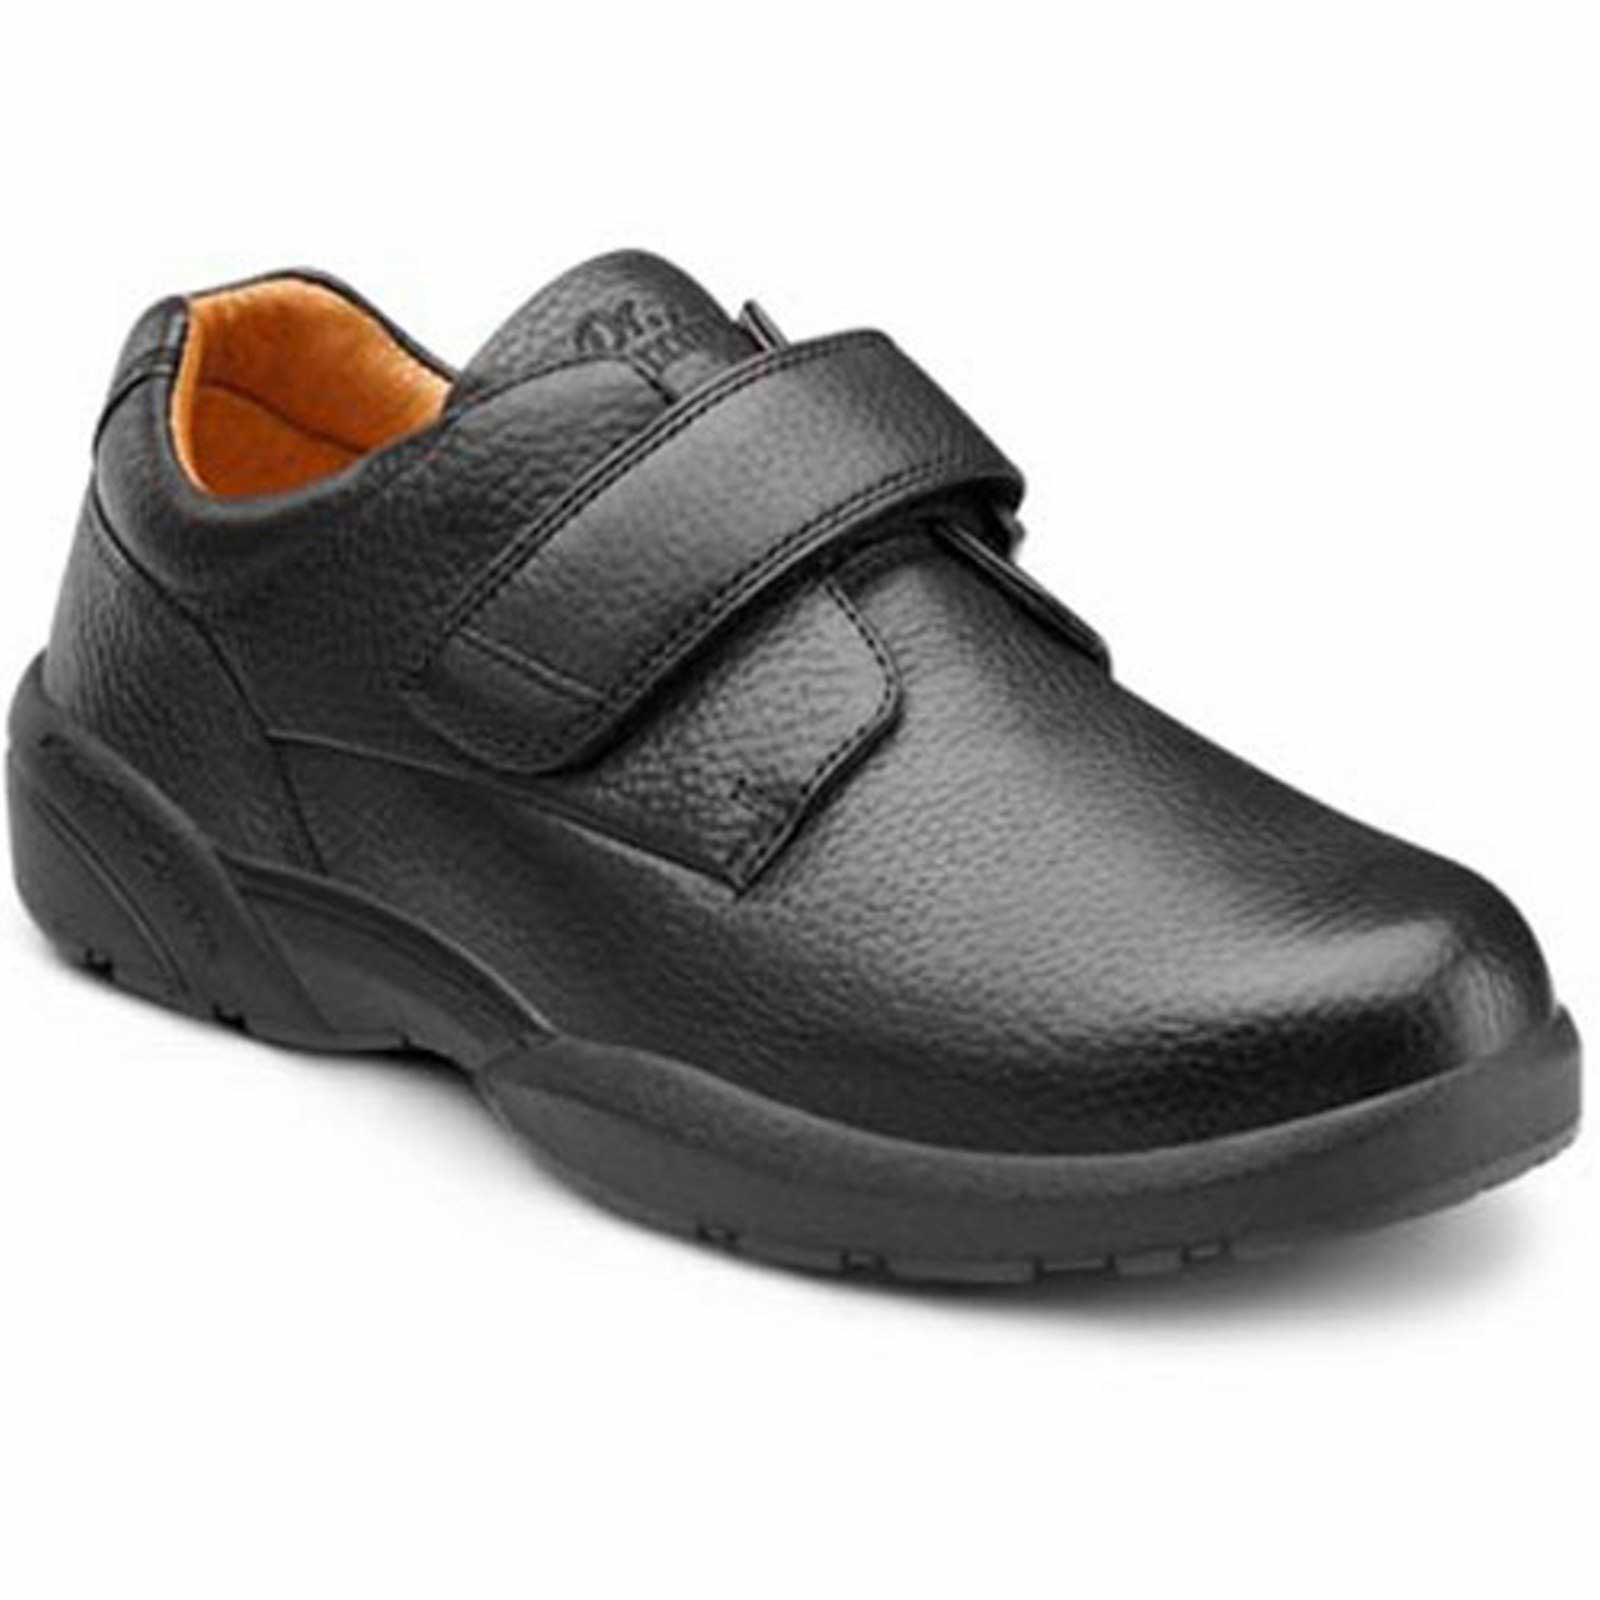 Dr Comfort Shoes - William-X - Men's Therapeutic Diabetic Shoe with Gel Plus Inserts - Casual and Medical - Medium (D) - Extra W at Sears.com